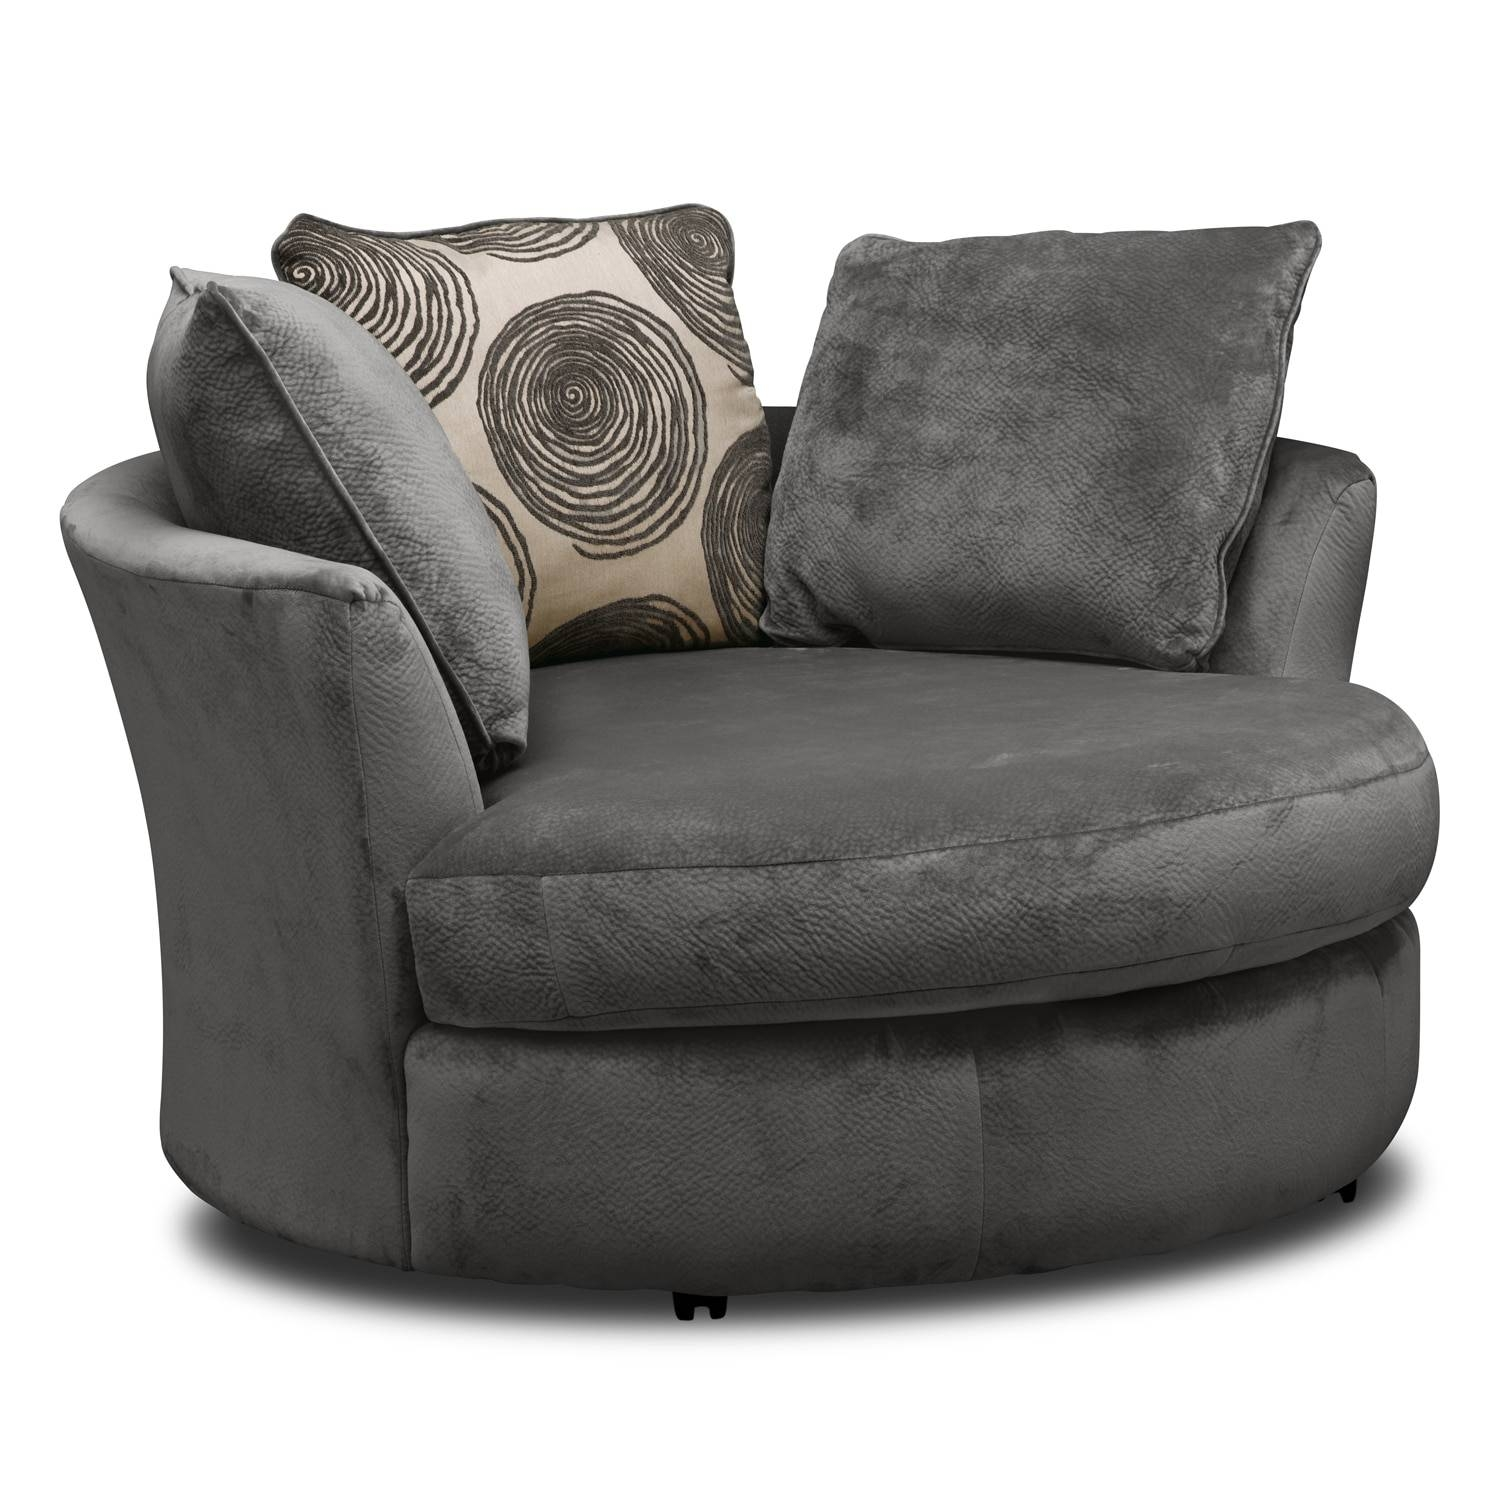 Cordelle Sofa, Loveseat And Swivel Chair Set - Gray | Value City pertaining to Sofa With Swivel Chair (Image 9 of 30)